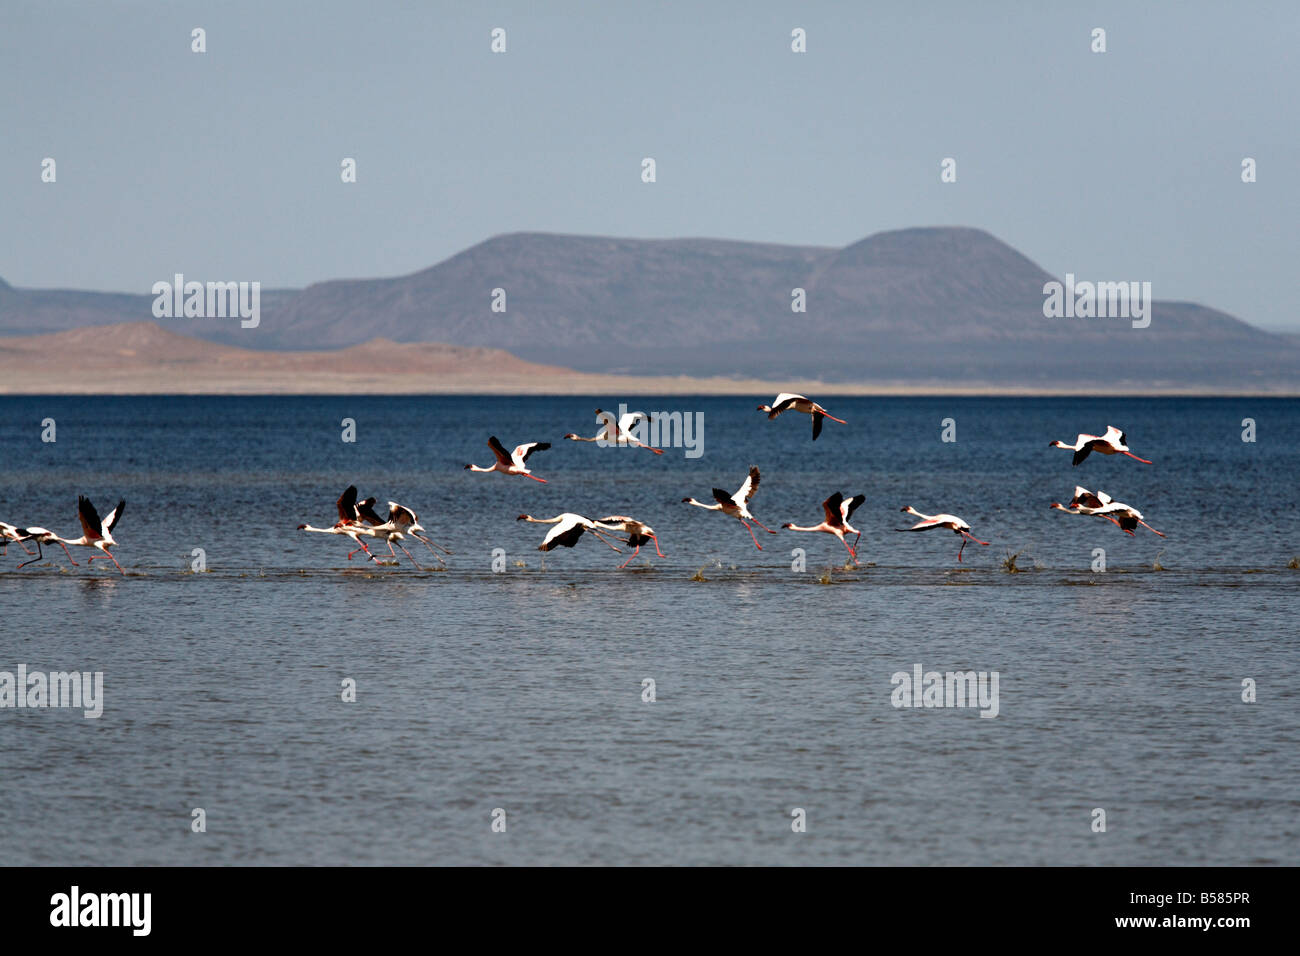 Flamingos taking off from Lac Abbe, Djibouti, Africa - Stock Image